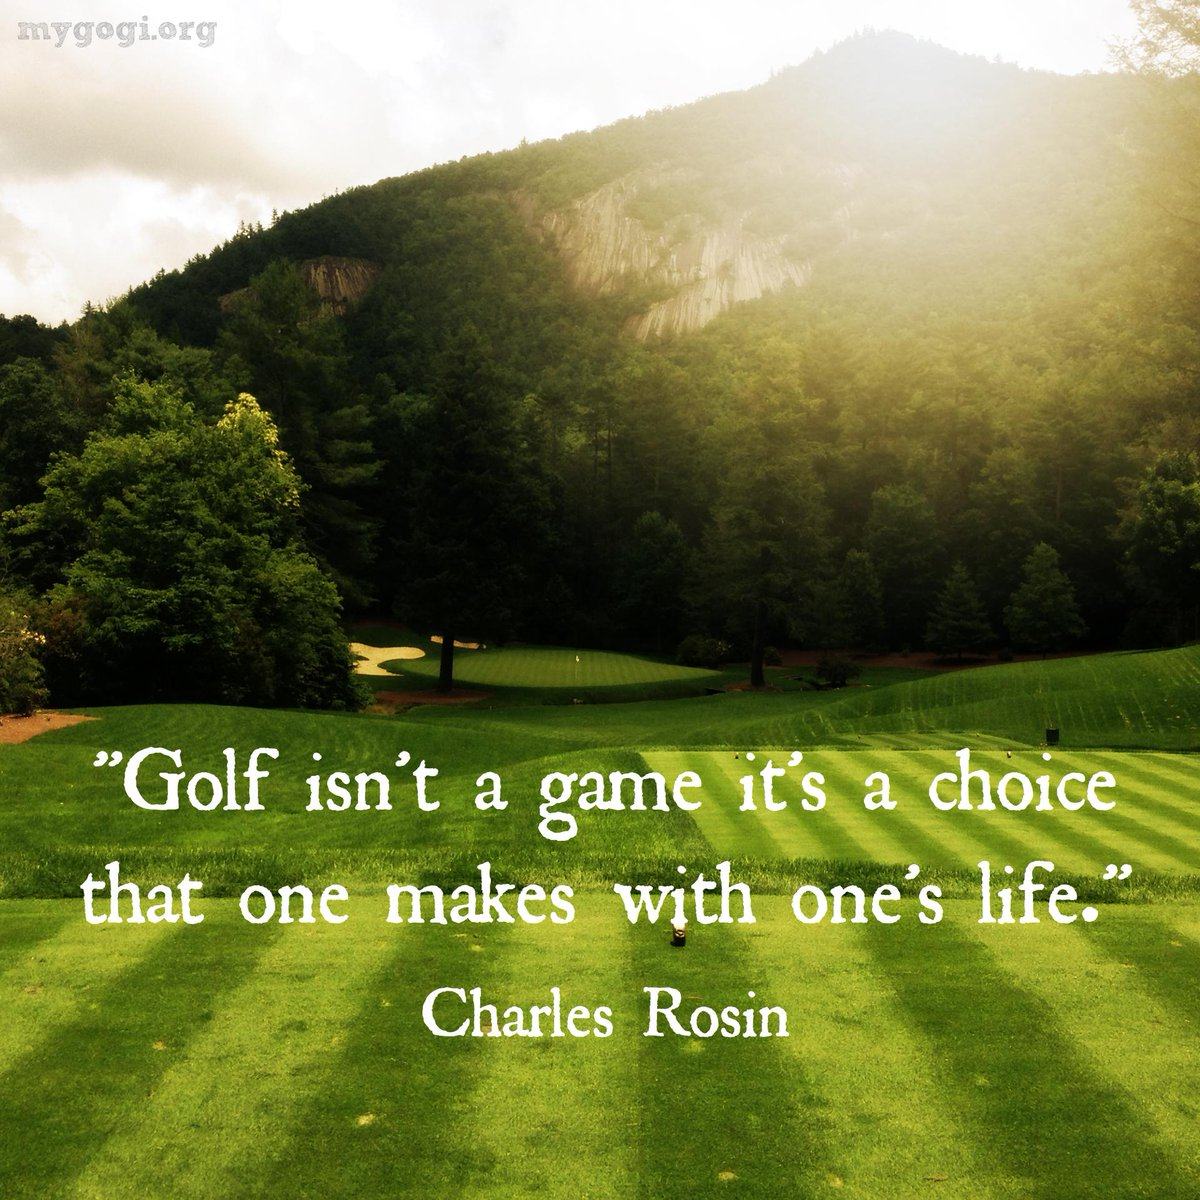 Golf Quotes About Life Quotes About Friendship And Golf Inspirational Quotes About Golf